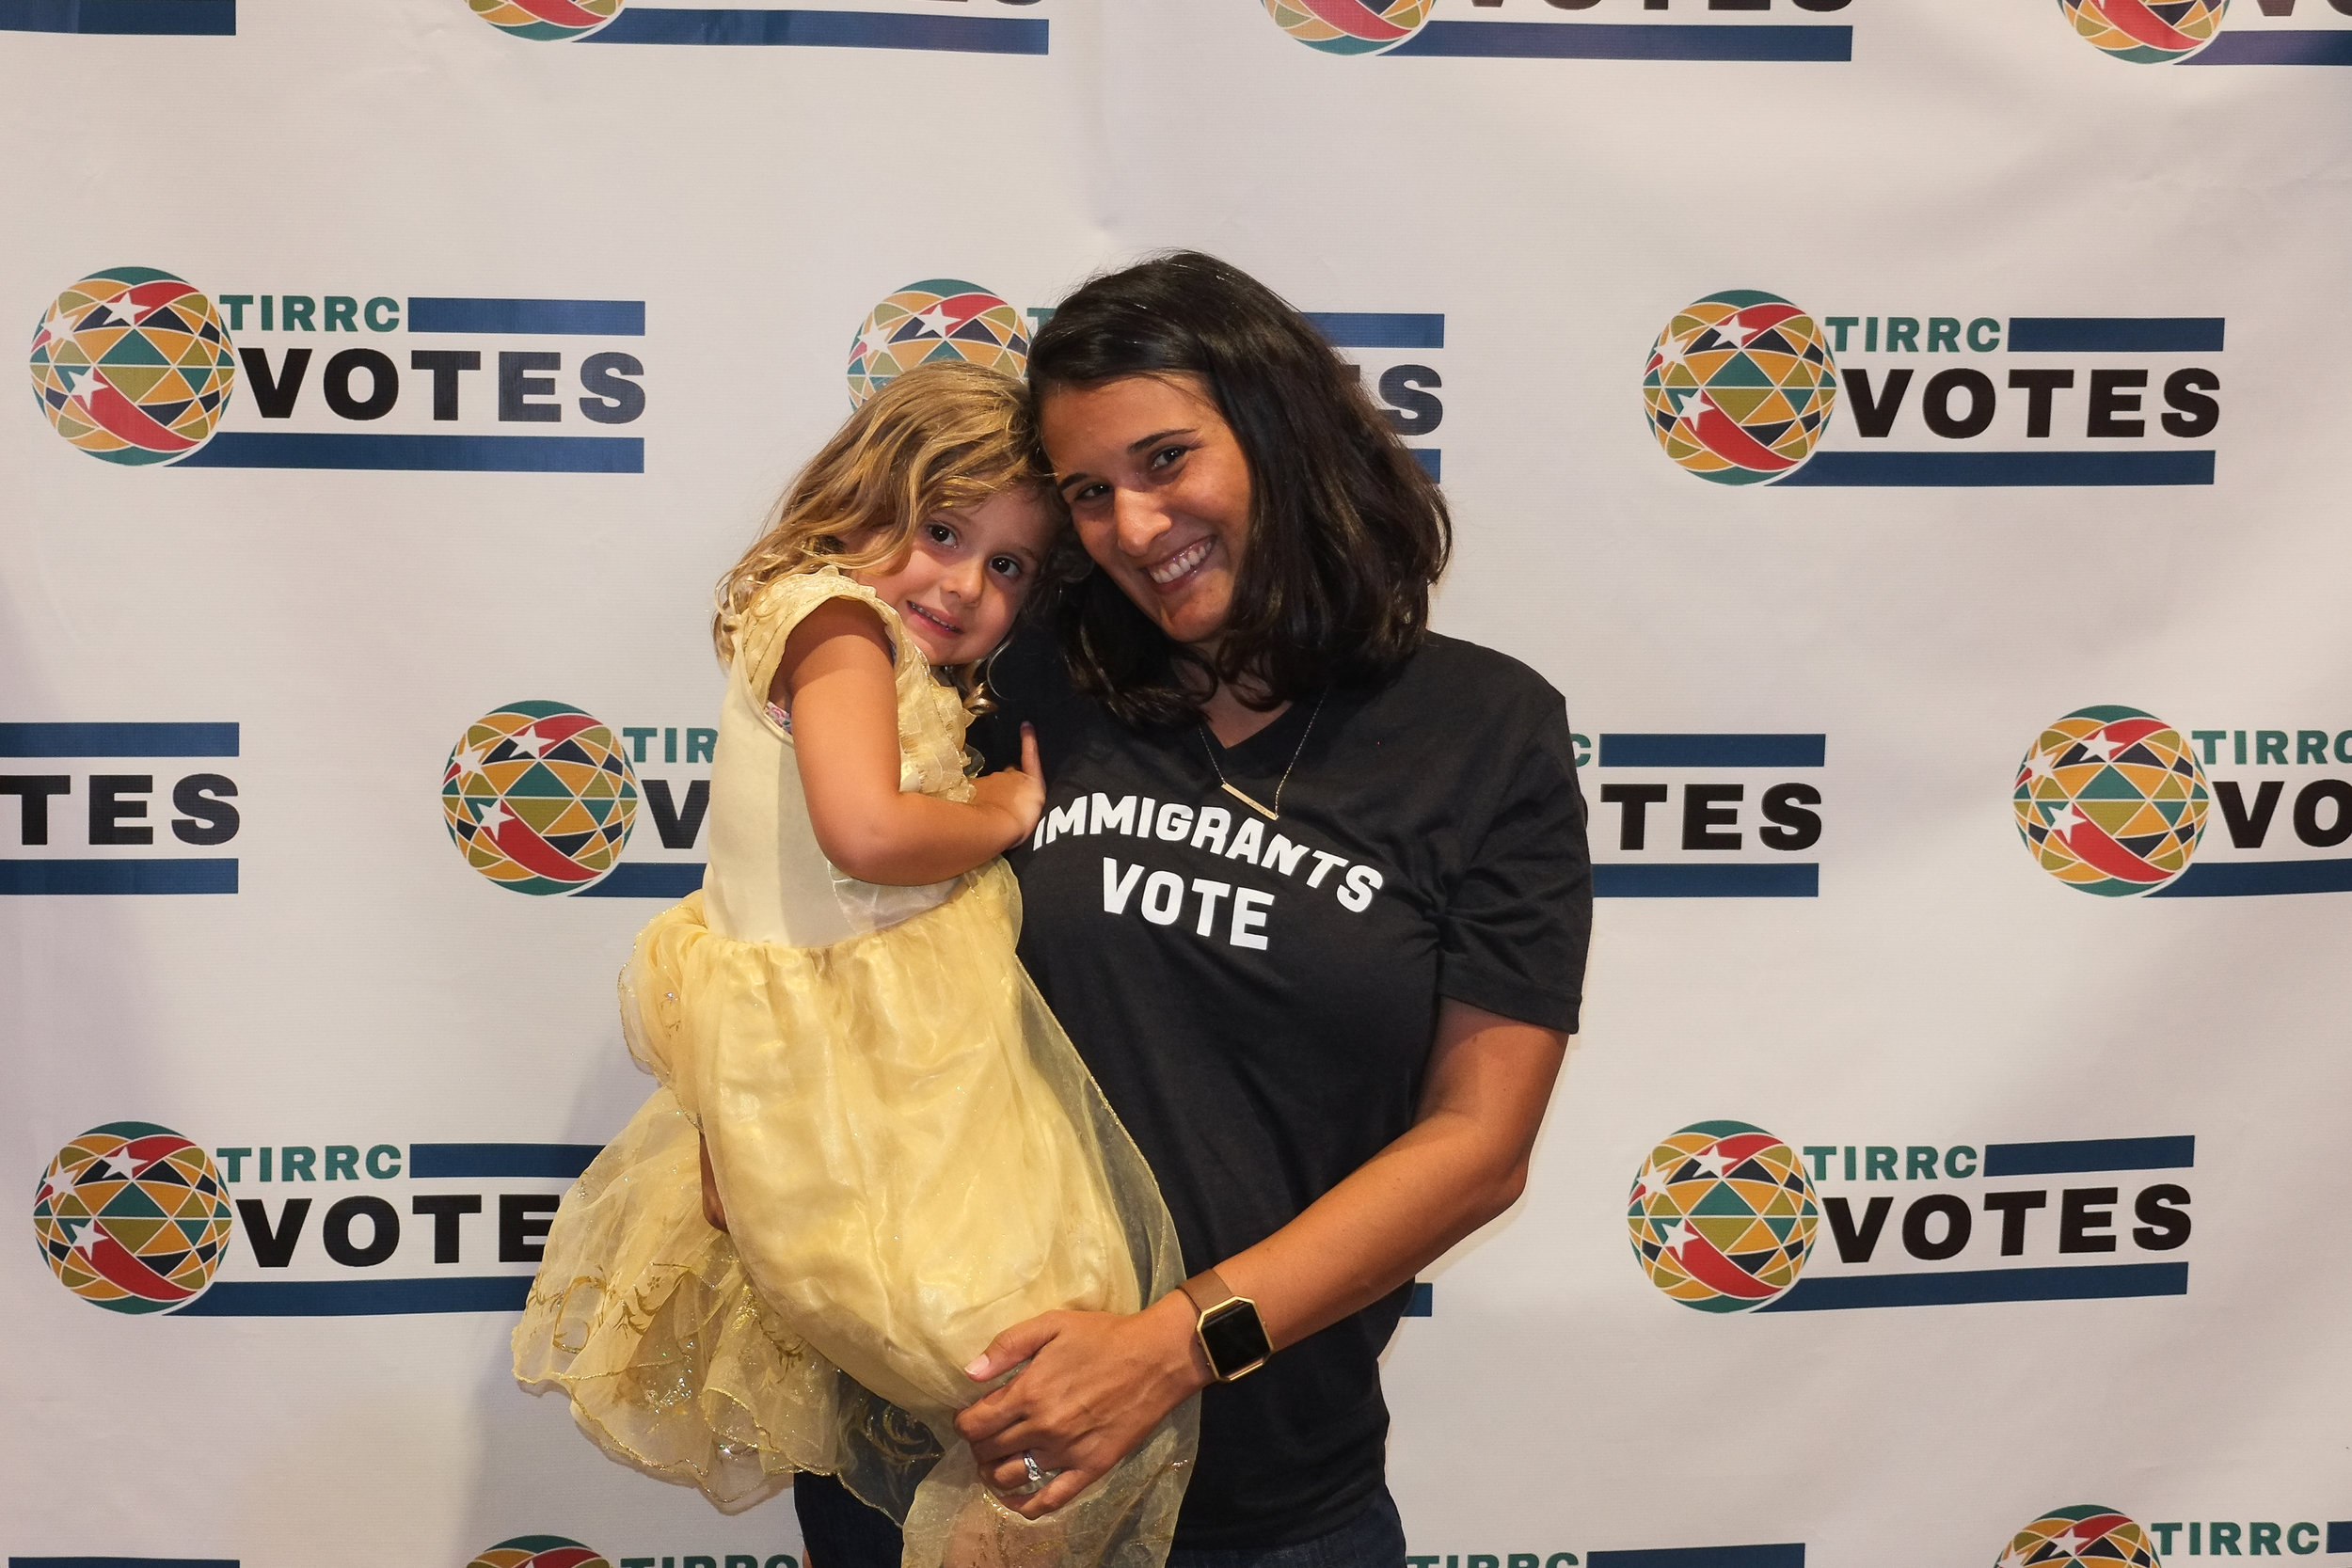 TIRRCVotes-PhotoBooth-31.jpg